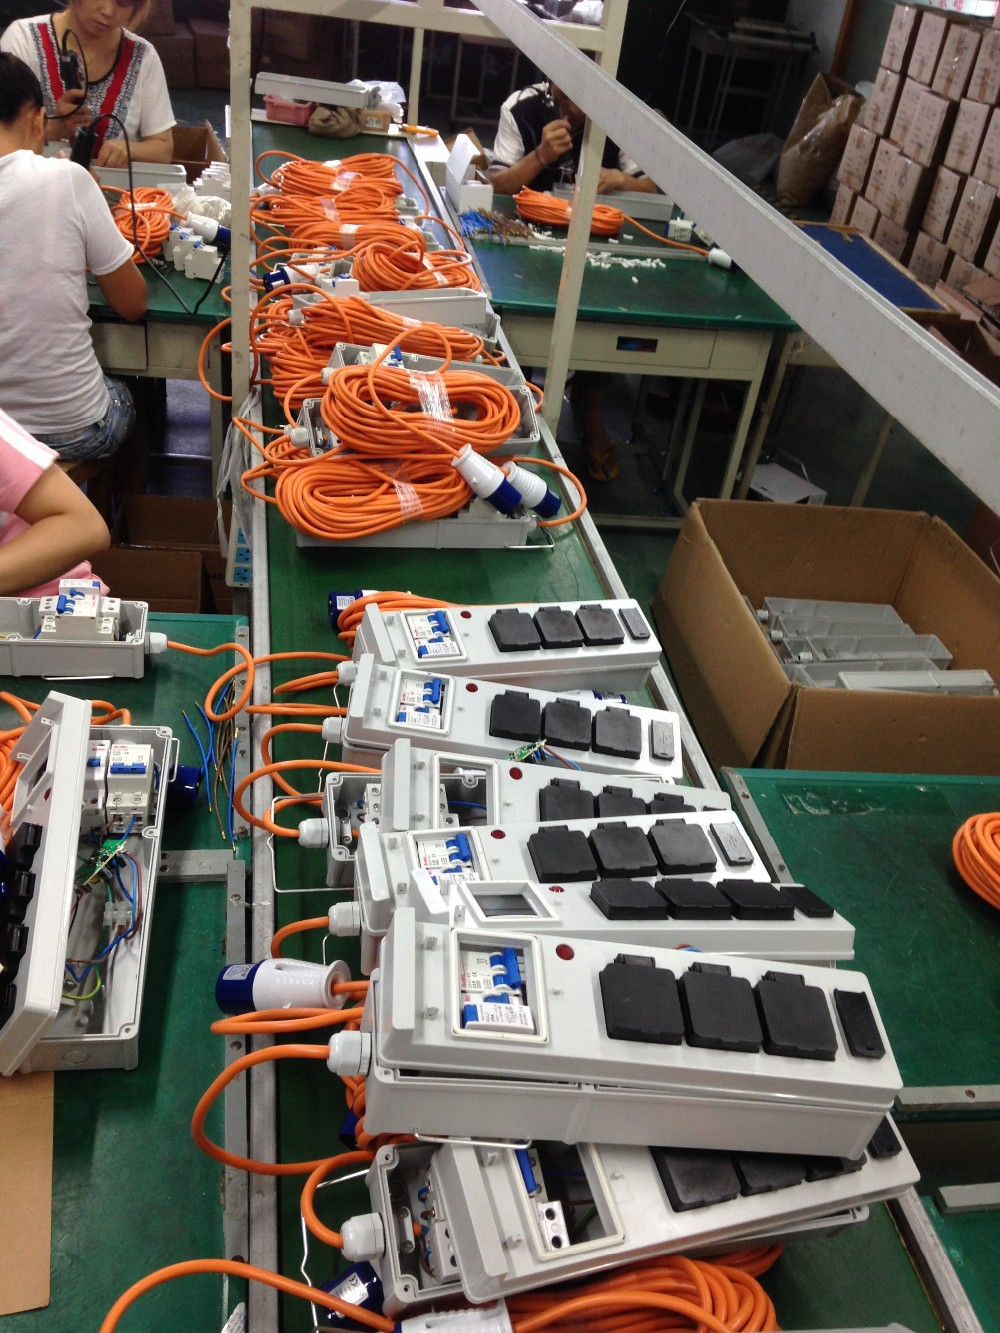 IEC 60309 Adapter Cable Workshop manufacturer assembly